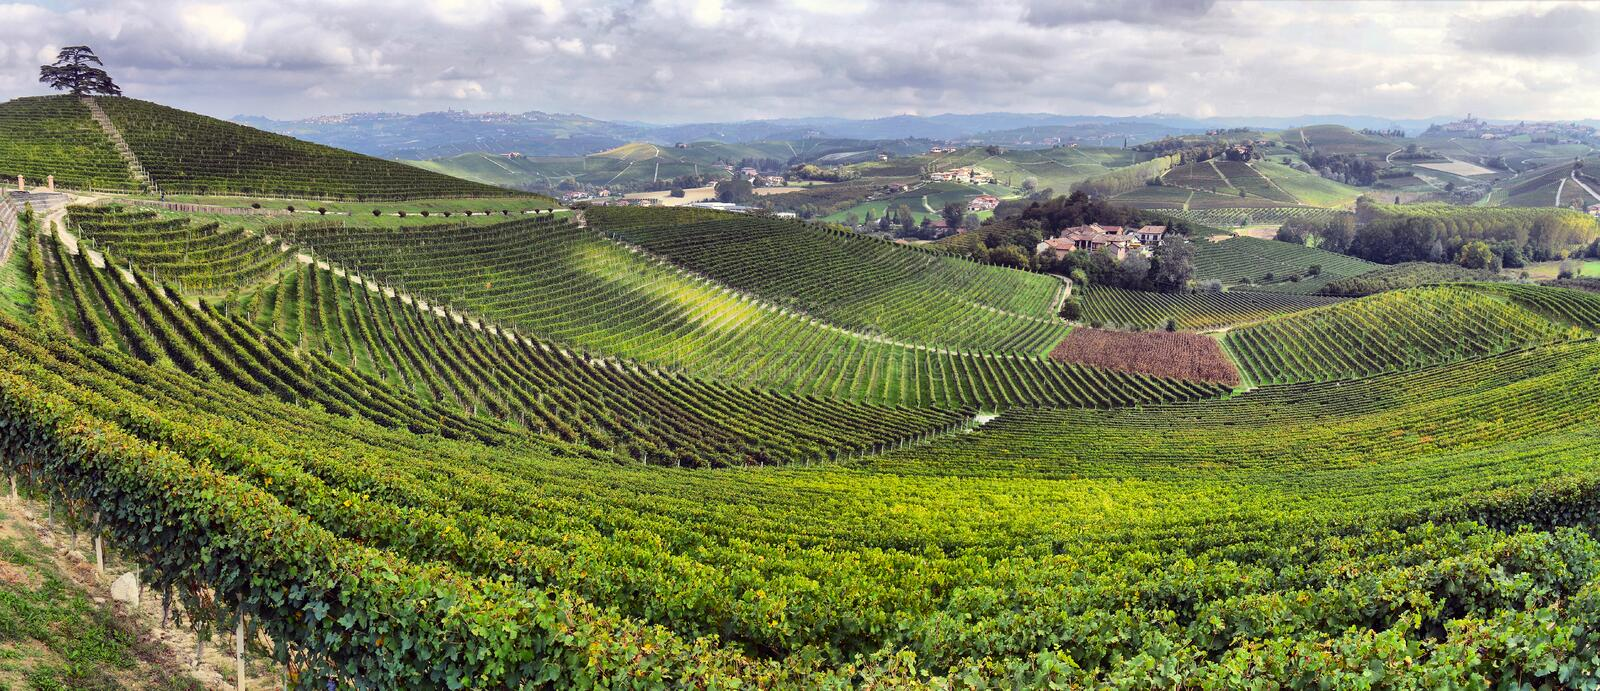 Download Vineyards in Italy stock photo. Image of green, nature - 35371822